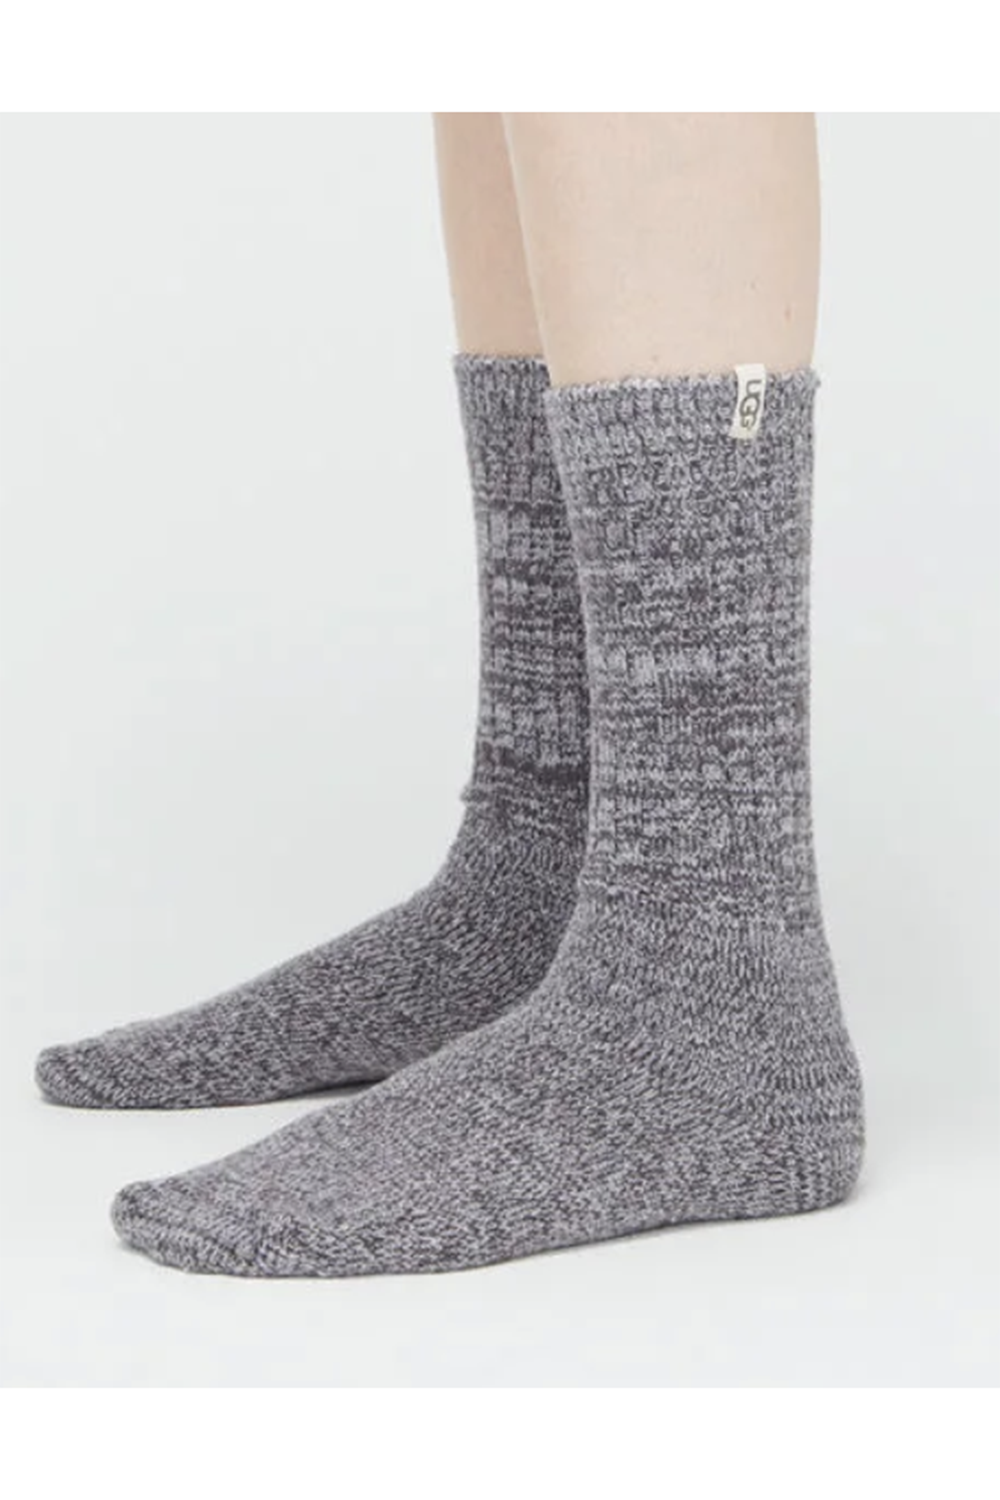 Rib Knit Slouchy Crew Sock - Nightfall